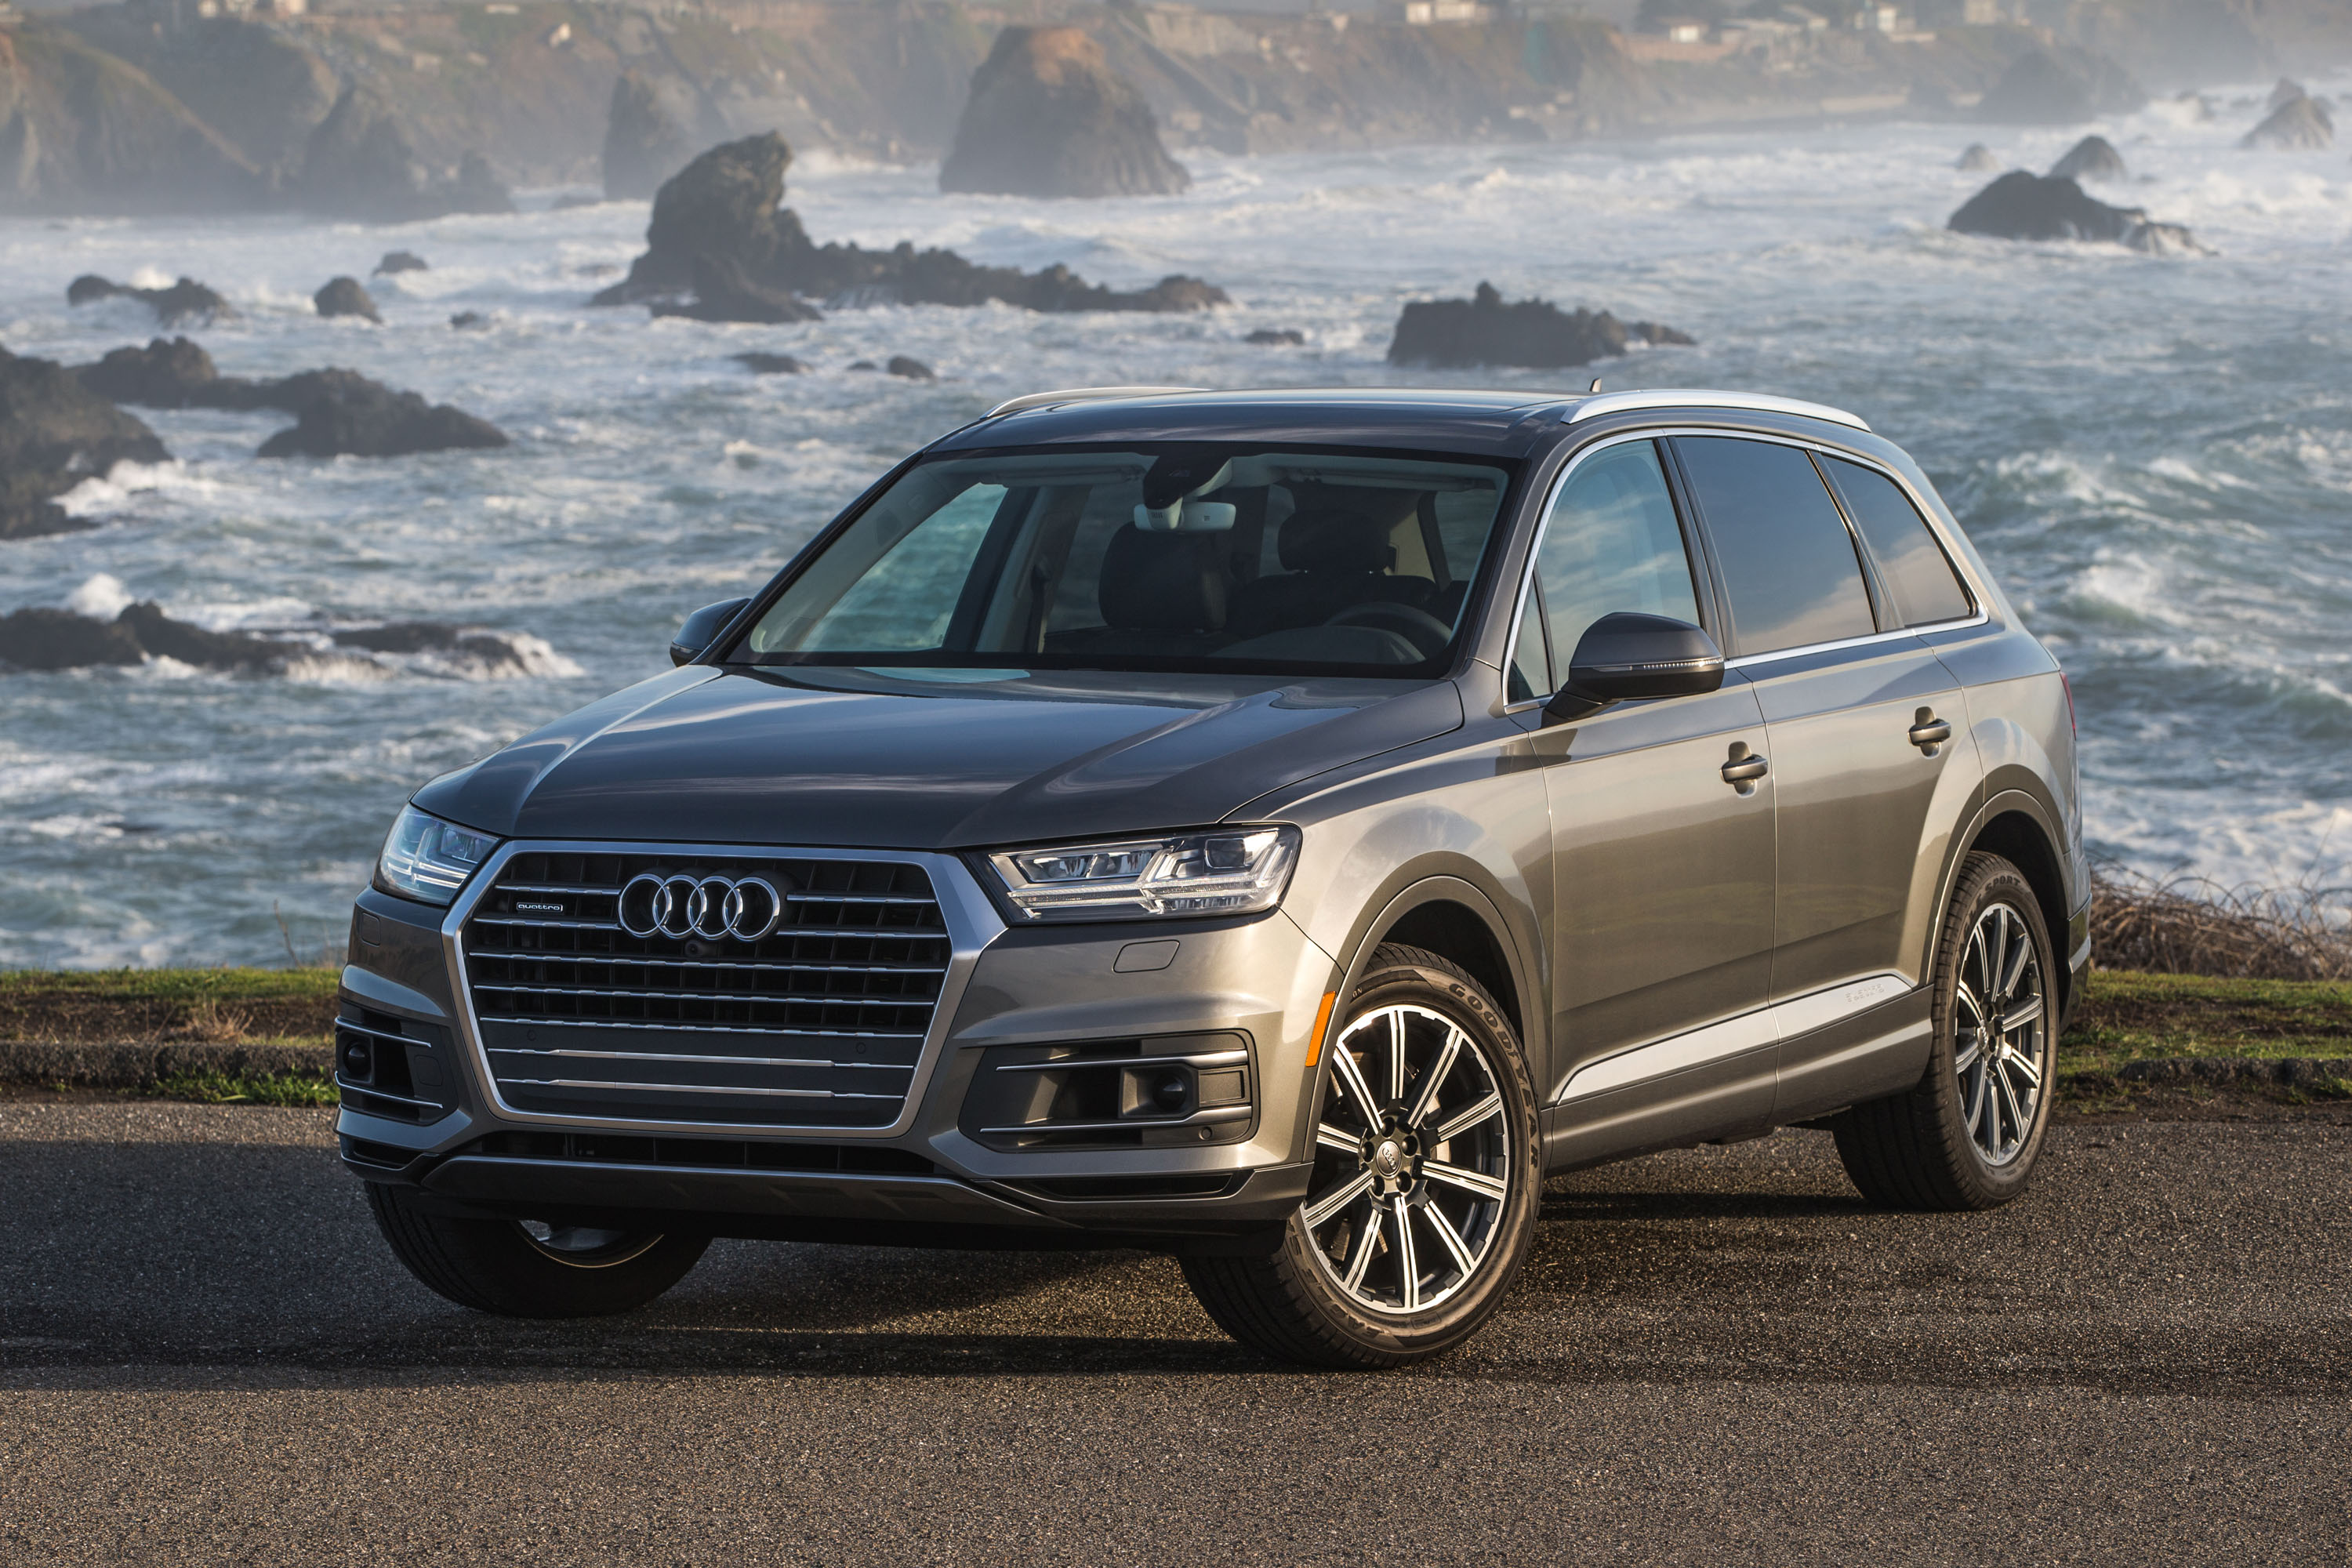 2018 Audi Q7 Premium Plus First Drive Review